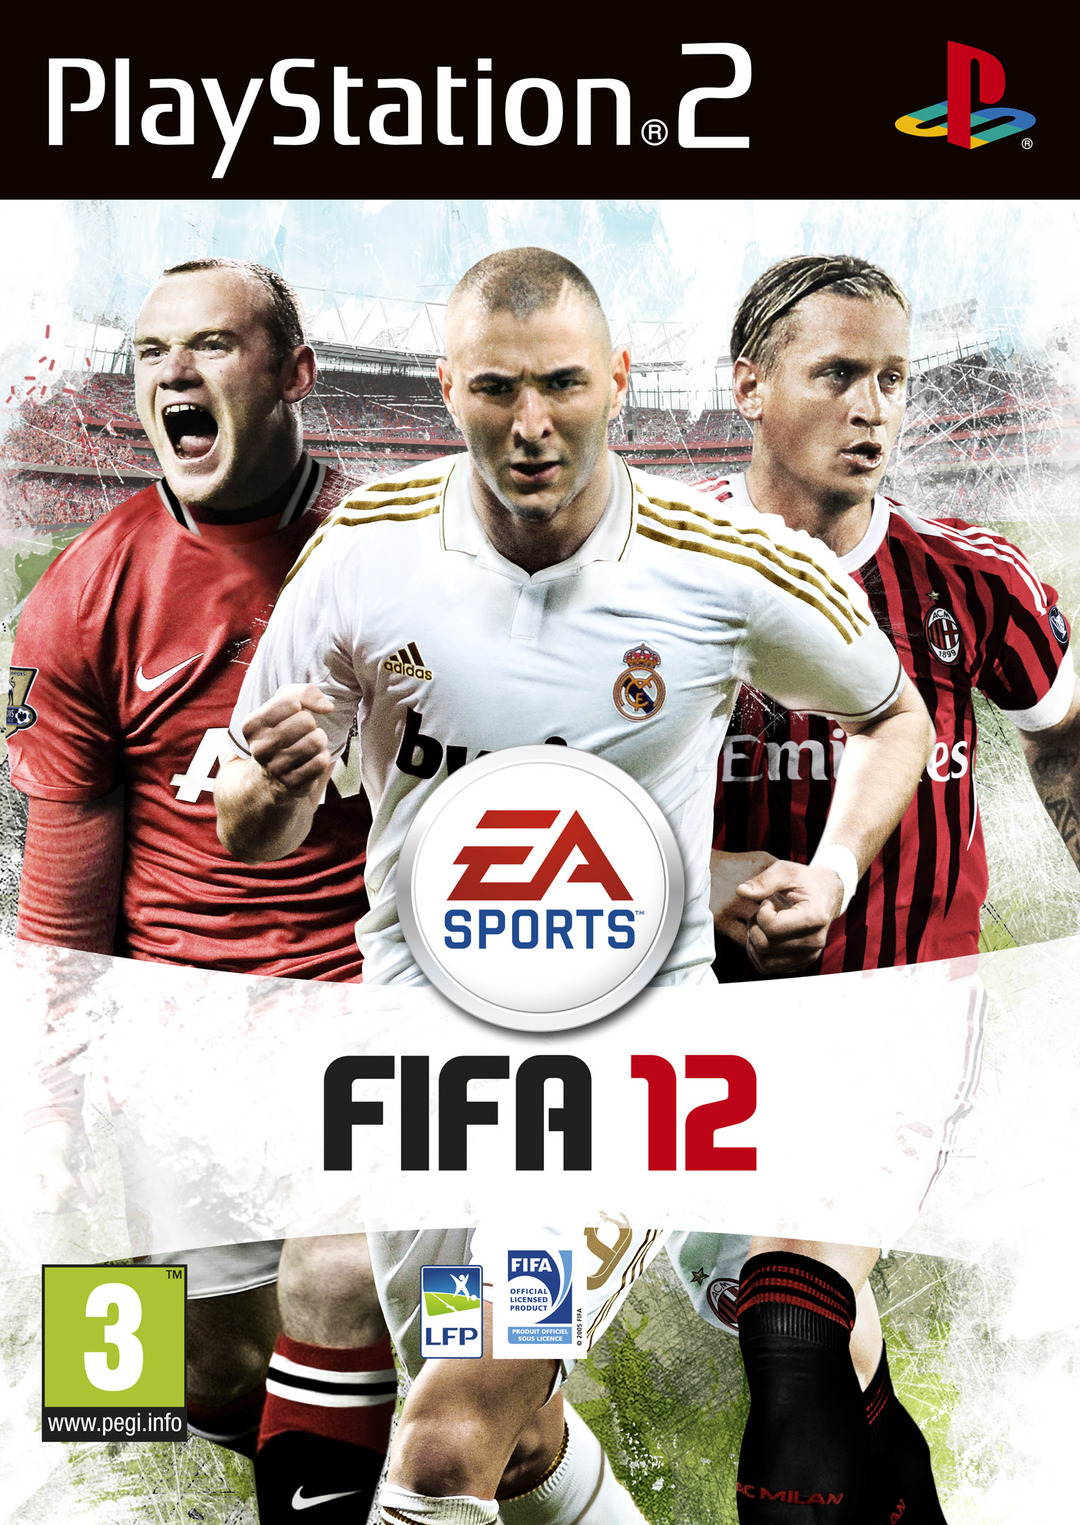 FIFA 12 PAL Playstation 2 | Megaupload Multi Lien